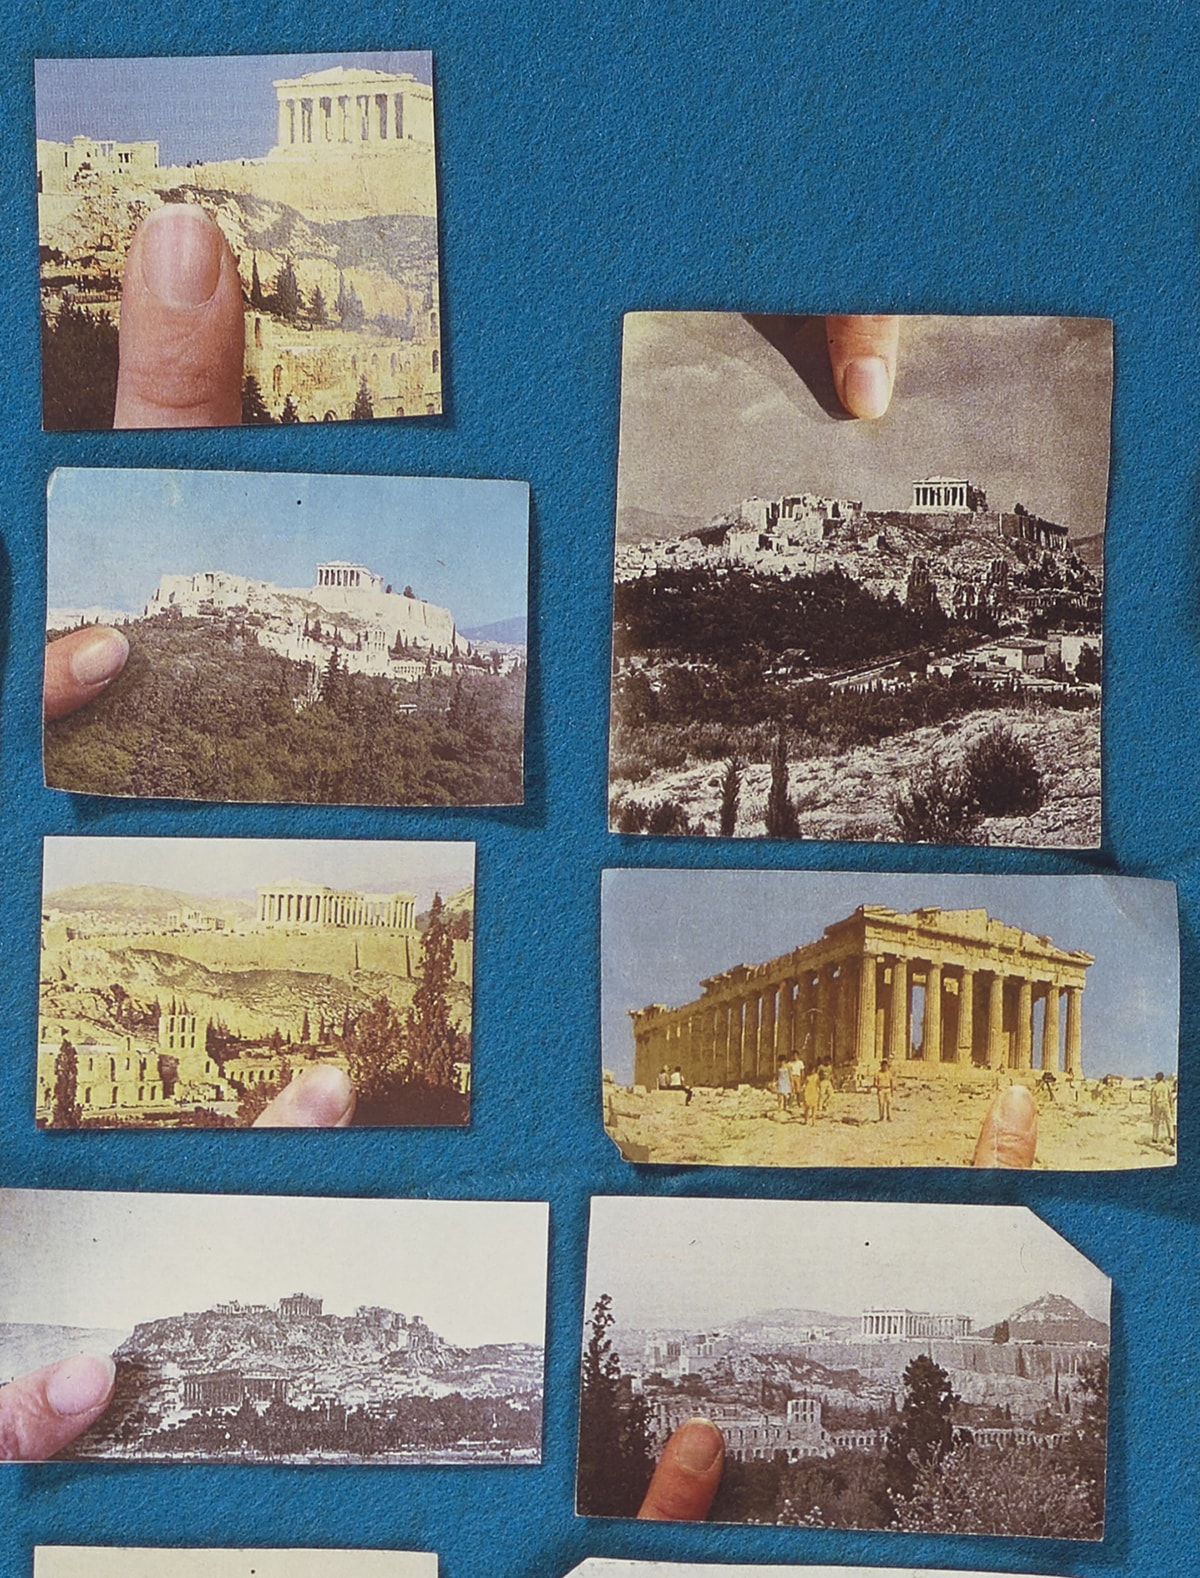 Detail: View of the artwork showing two vertical rows of images. The first row contains four pictures of the Acropolis, the first three in color and the last in black and white. The second row has three clippings, the first and last in black and white and the third in color. Each show the Acropolis from a different viewpoint, close-up or from afar. They also contain the image of a fingertip.